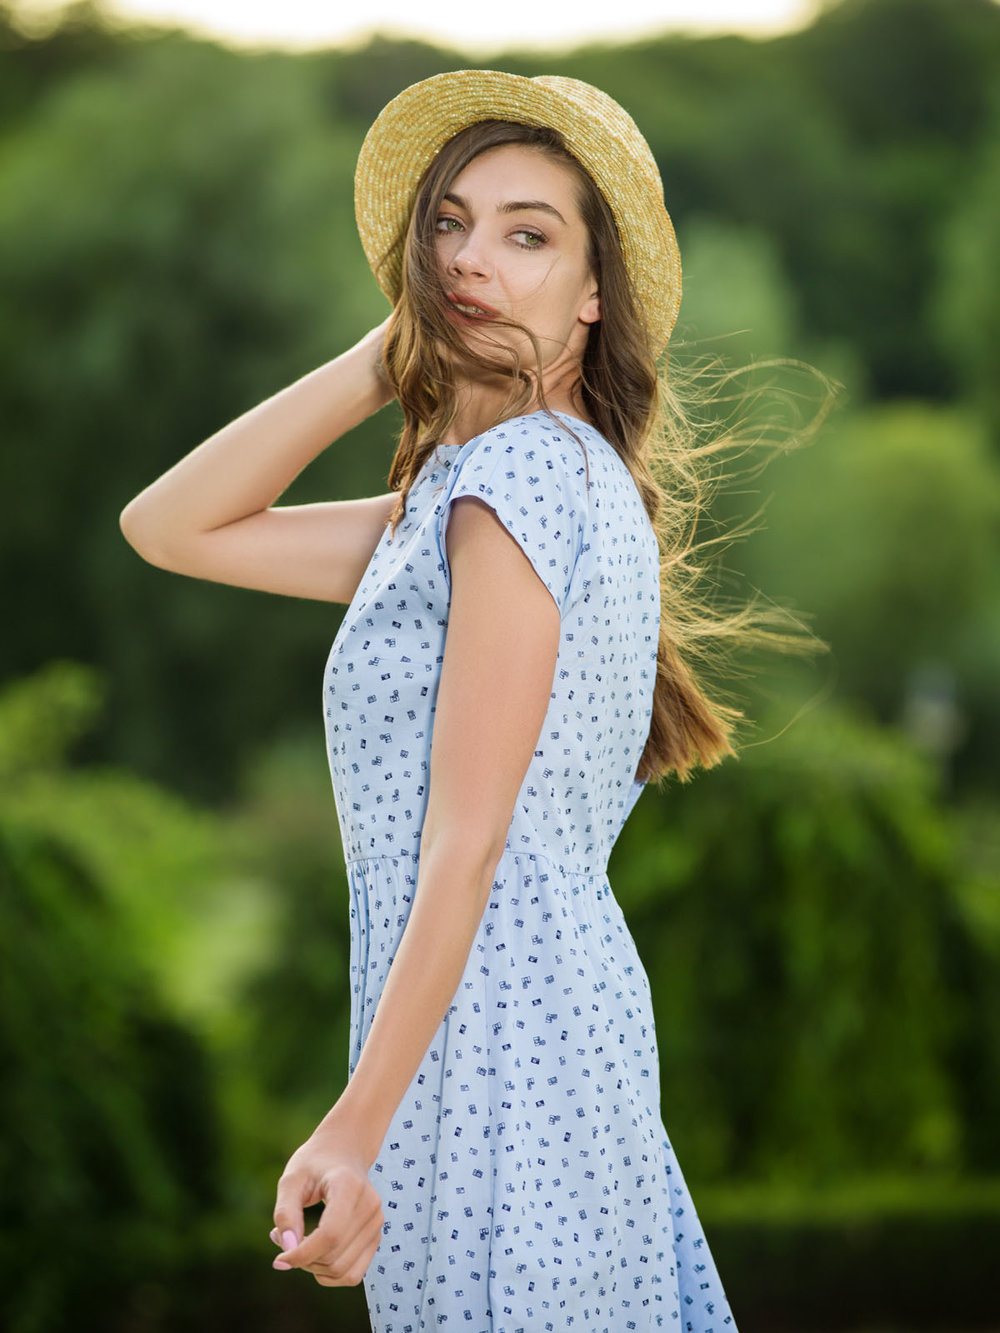 Beautiful young woman in a summer dress.